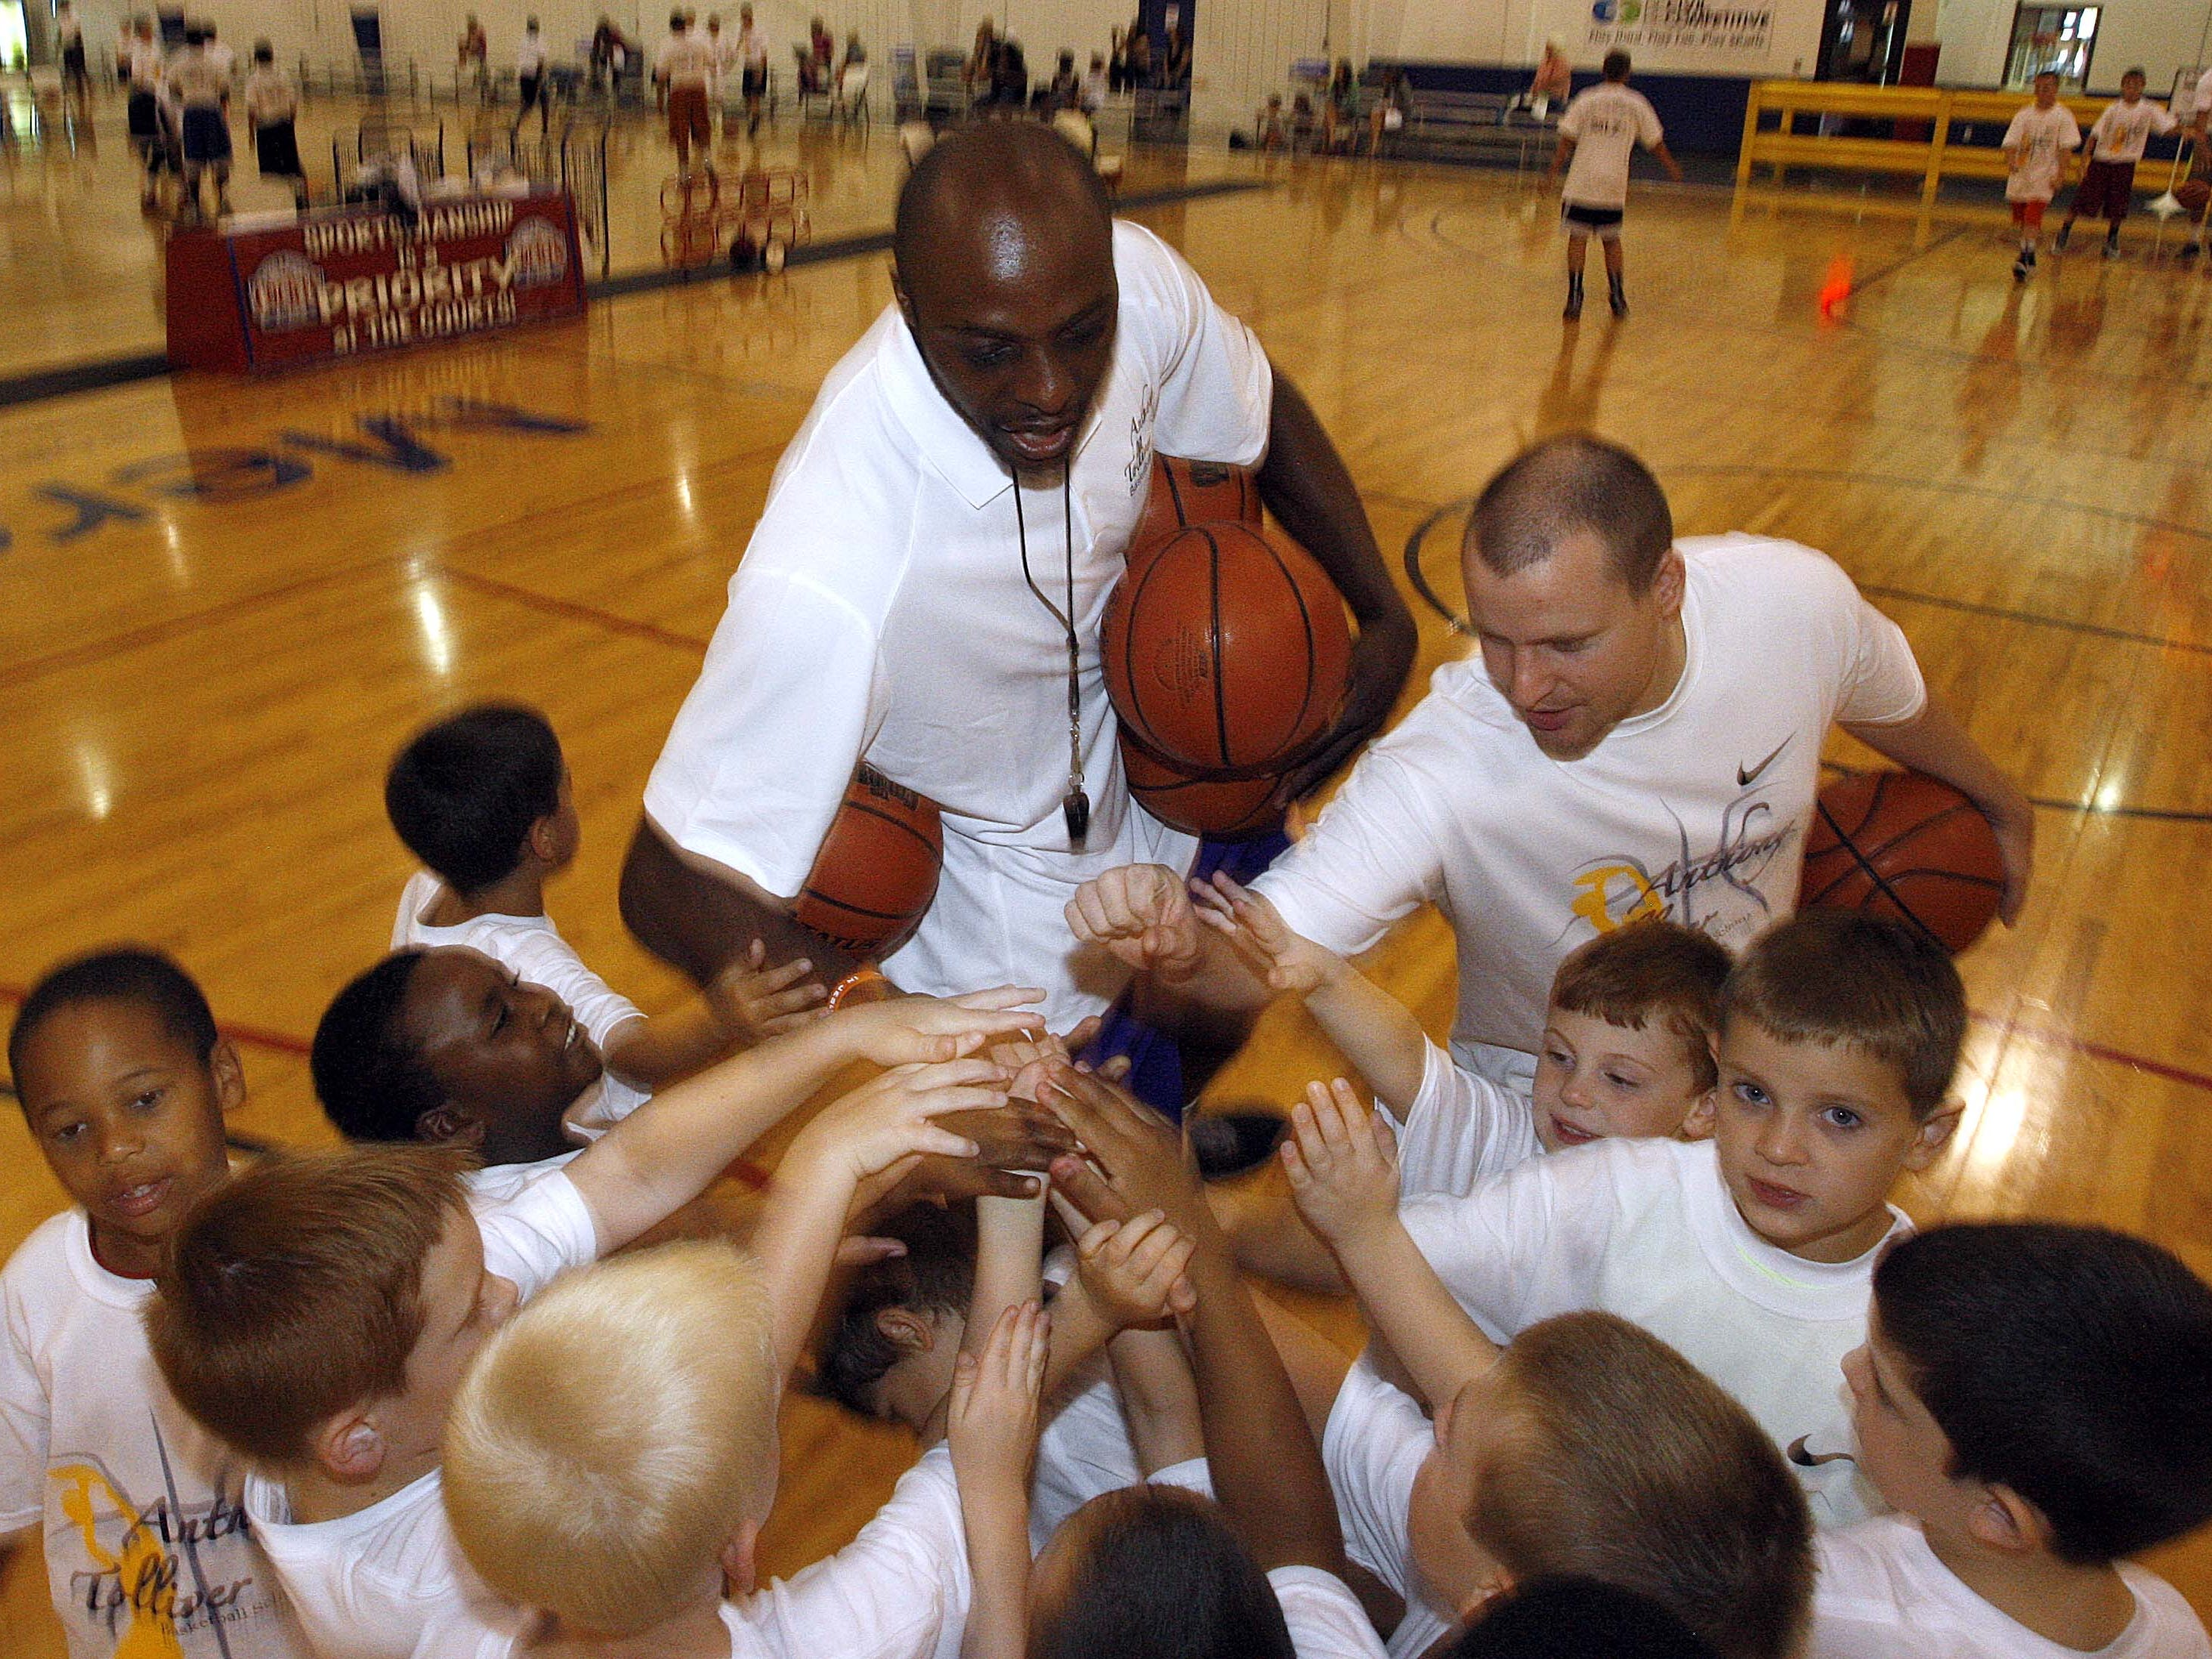 Images from the Anthony Tolliver Basketball camp at The Courts in Springfield on July 24, 2013.